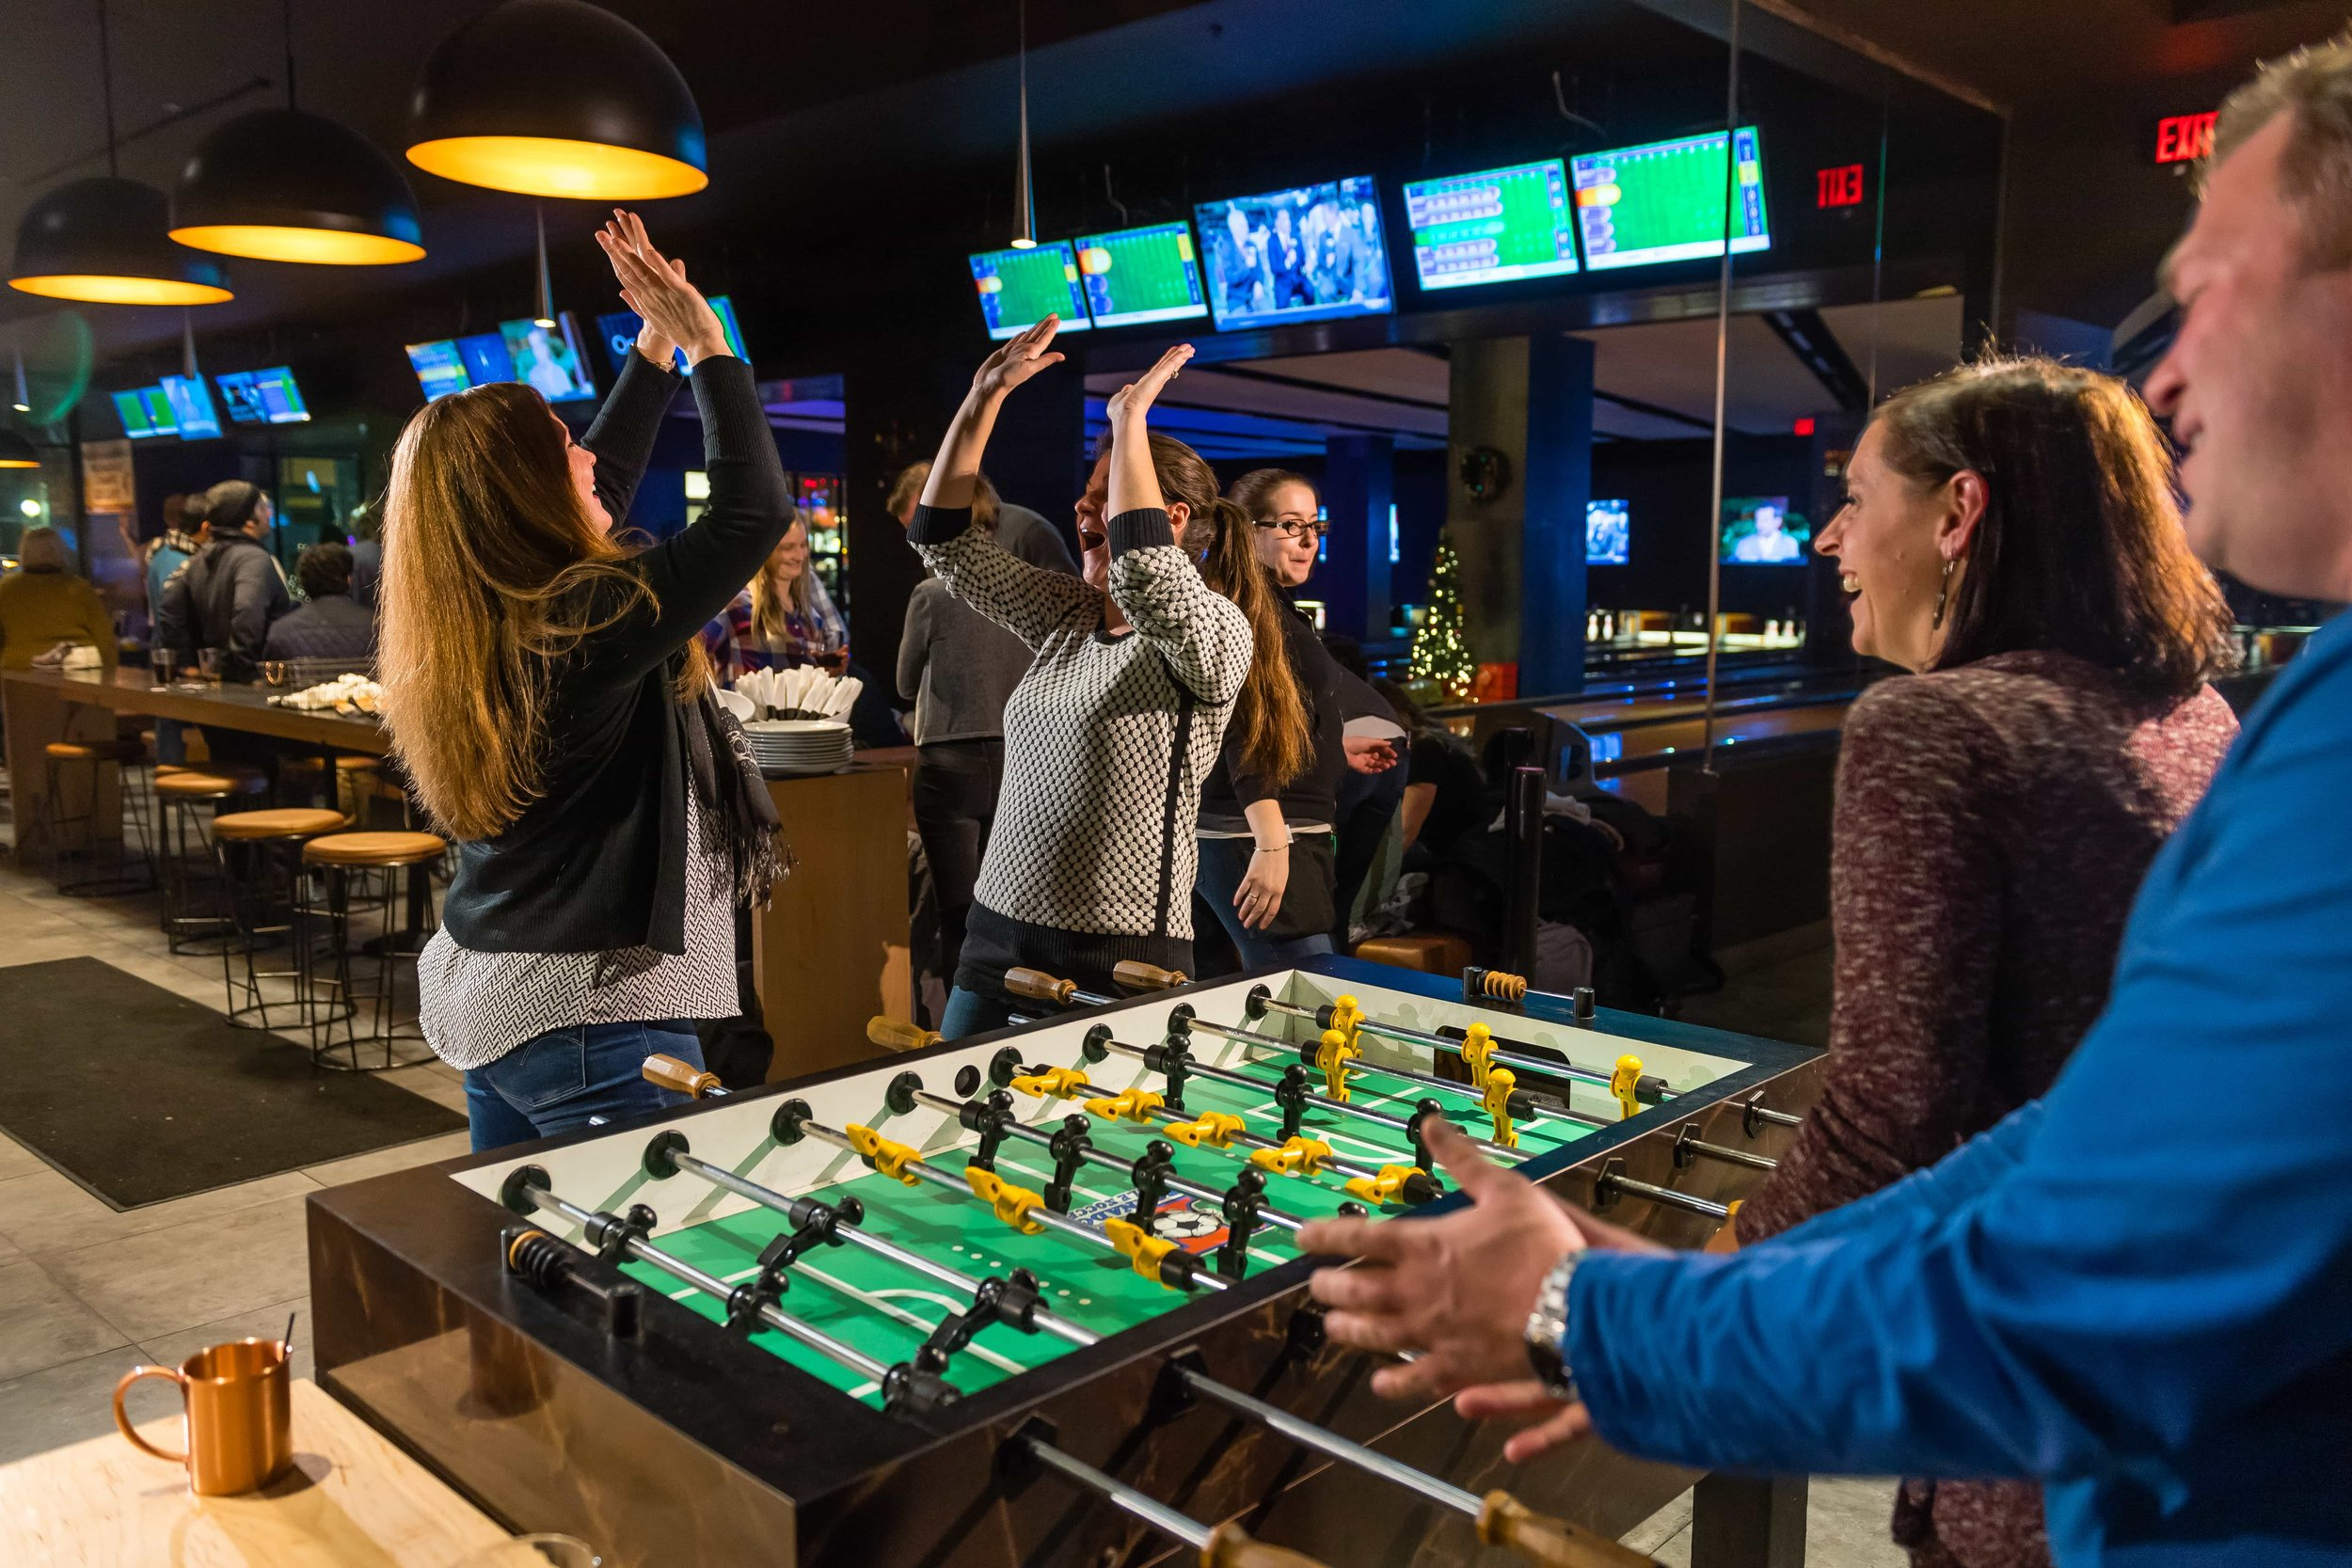 games-foosball-celebrate.jpg